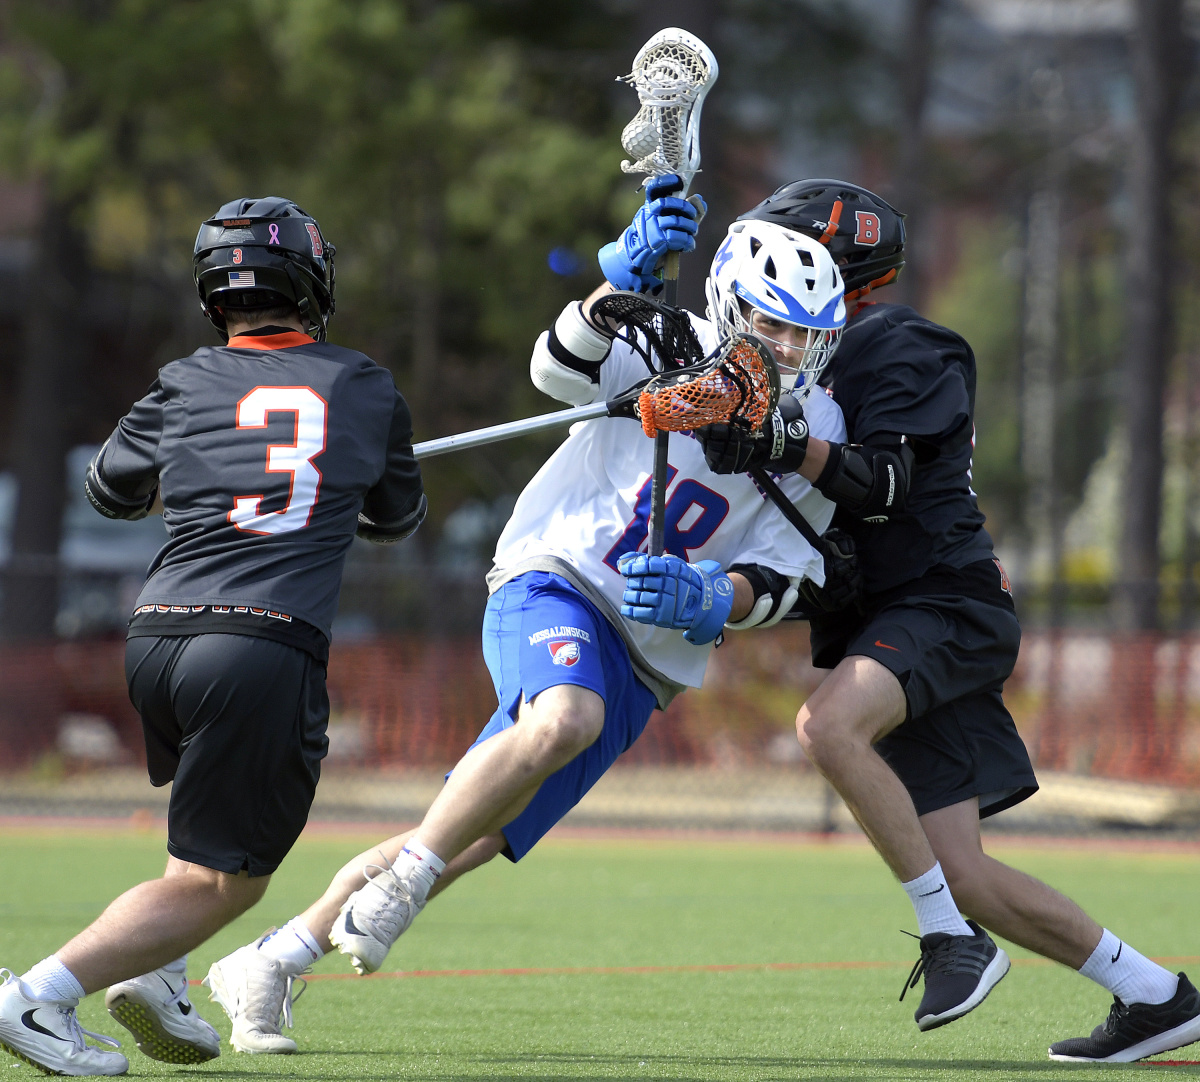 Brunswick Boys Lacrosse Strikes Late To Down Messalonskee